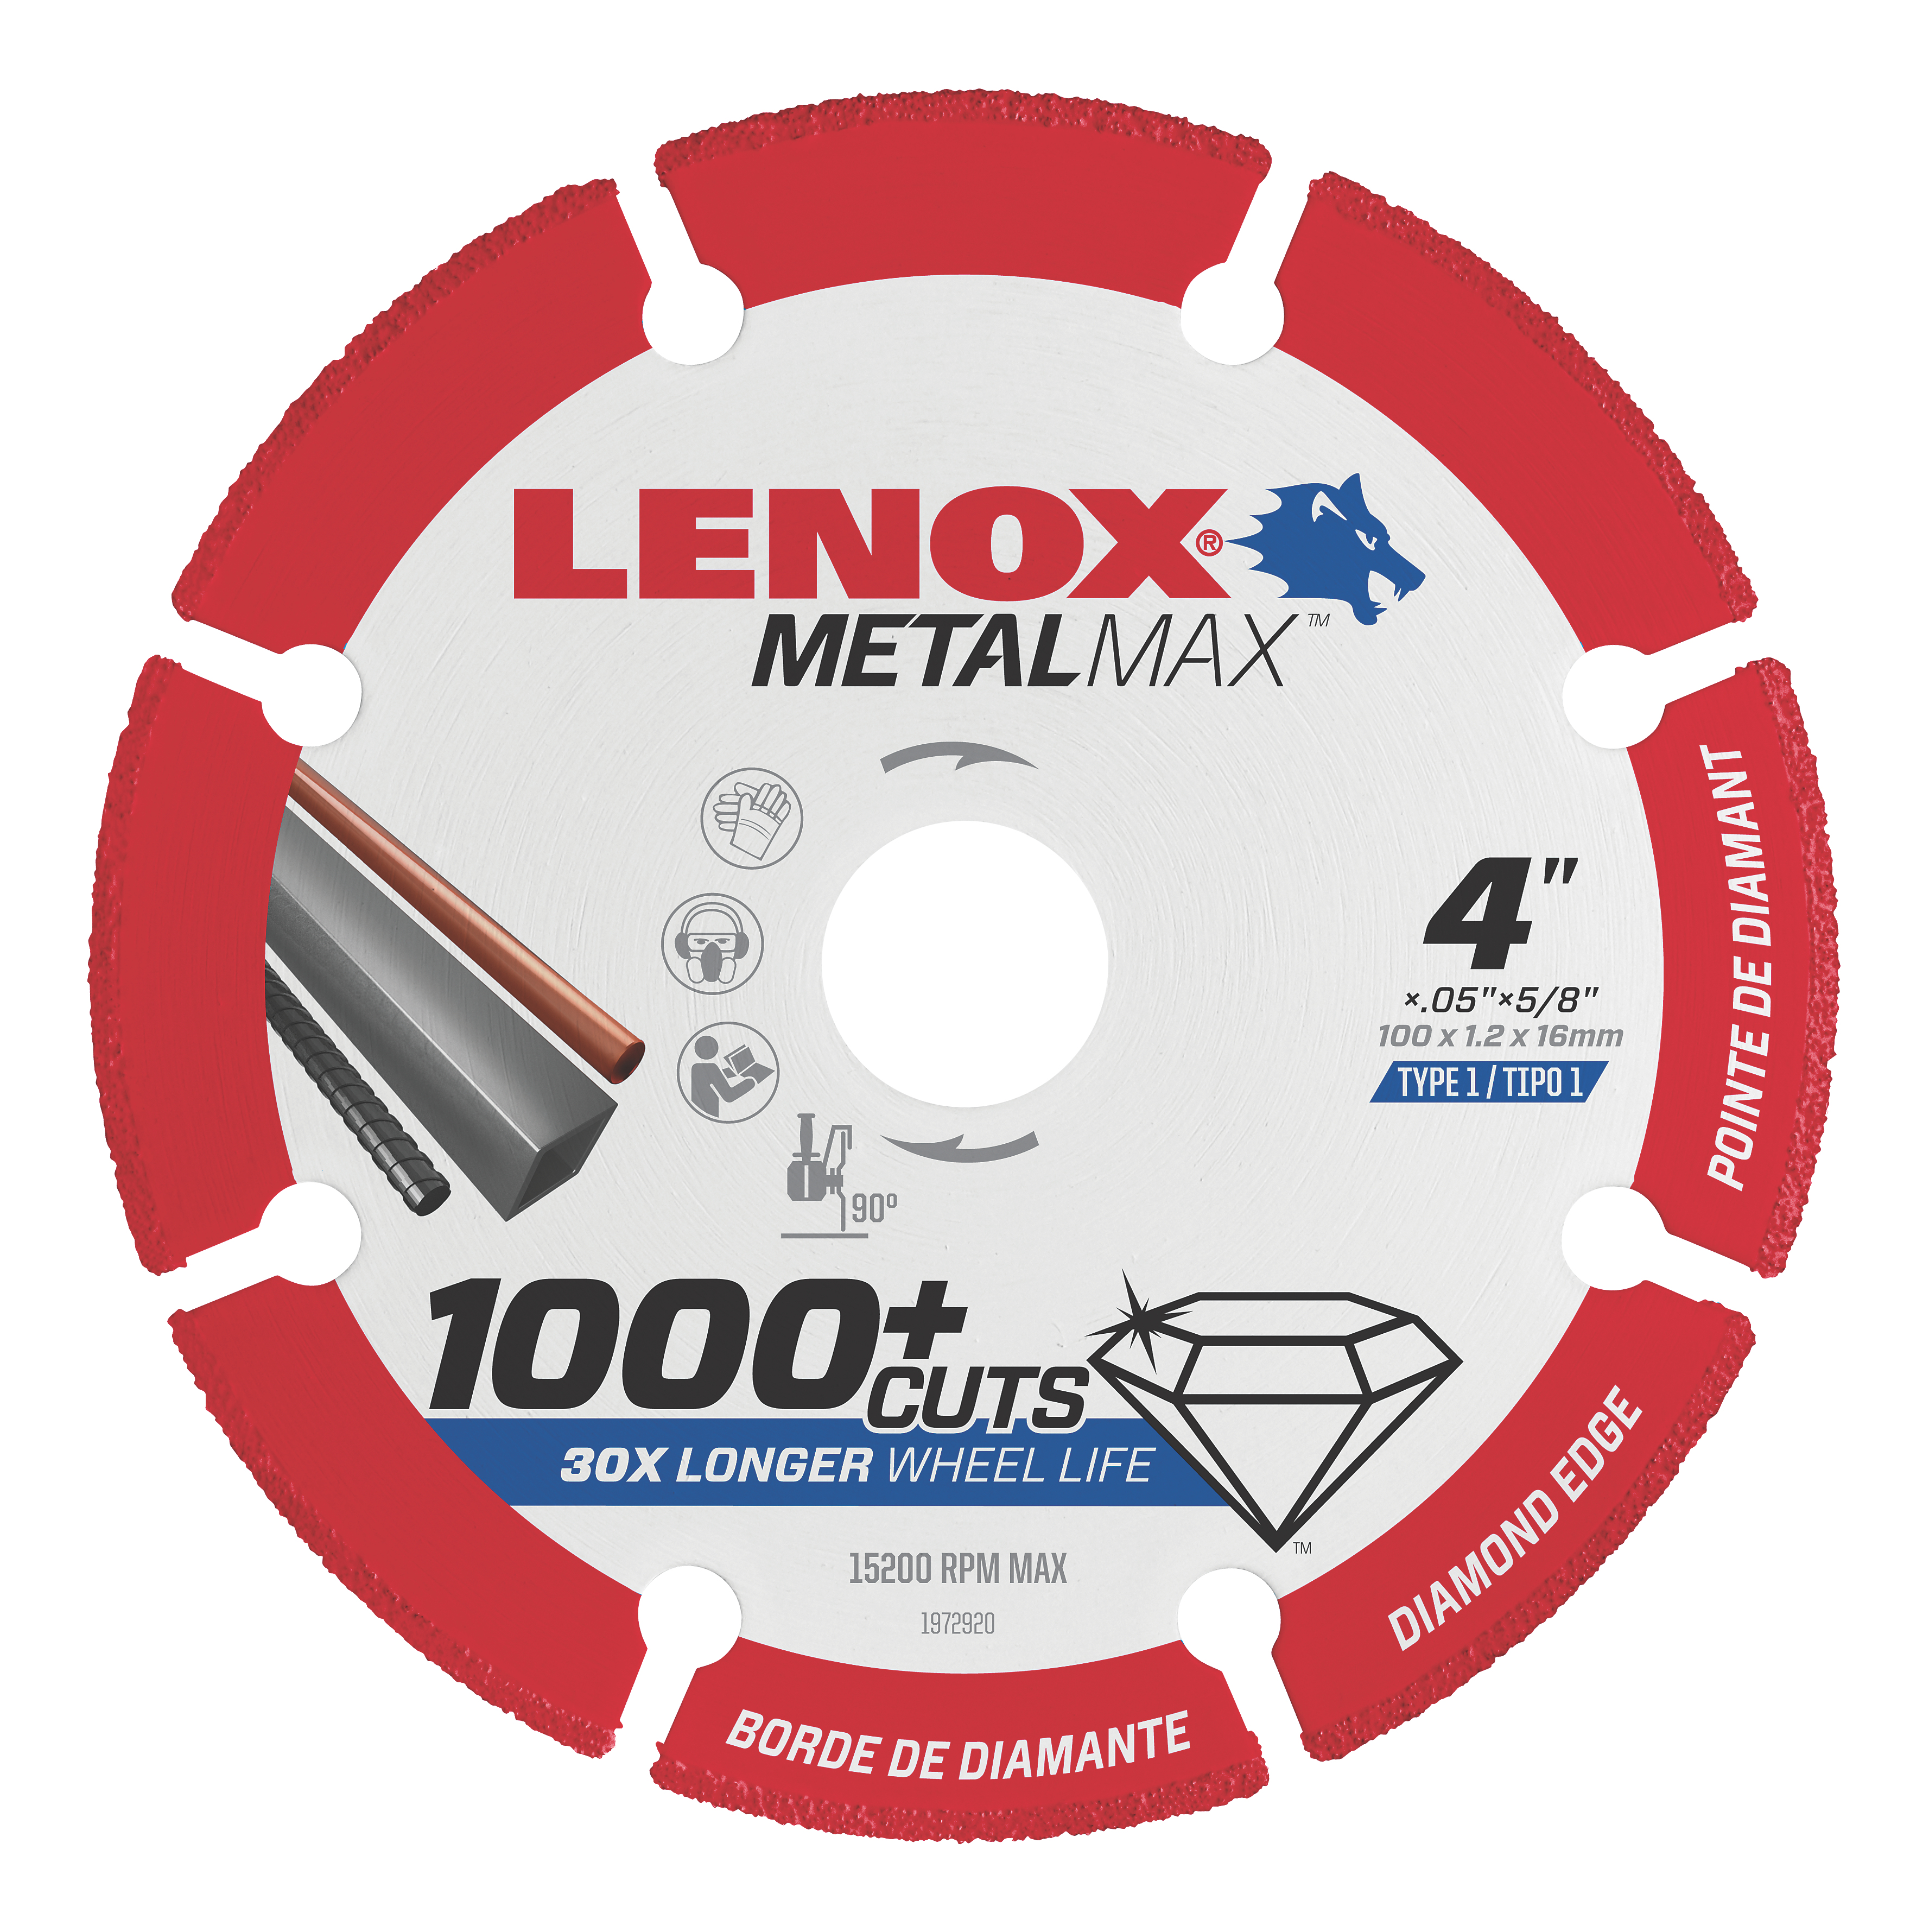 LENOX® TOOLS METALMAX™ 1972920 METALMAX™ Type 1 Cut-Off Wheel, 4 in Dia x 0.05 in THK, 5/8 in Center Hole, 40/50 Grit, Diamond Abrasive